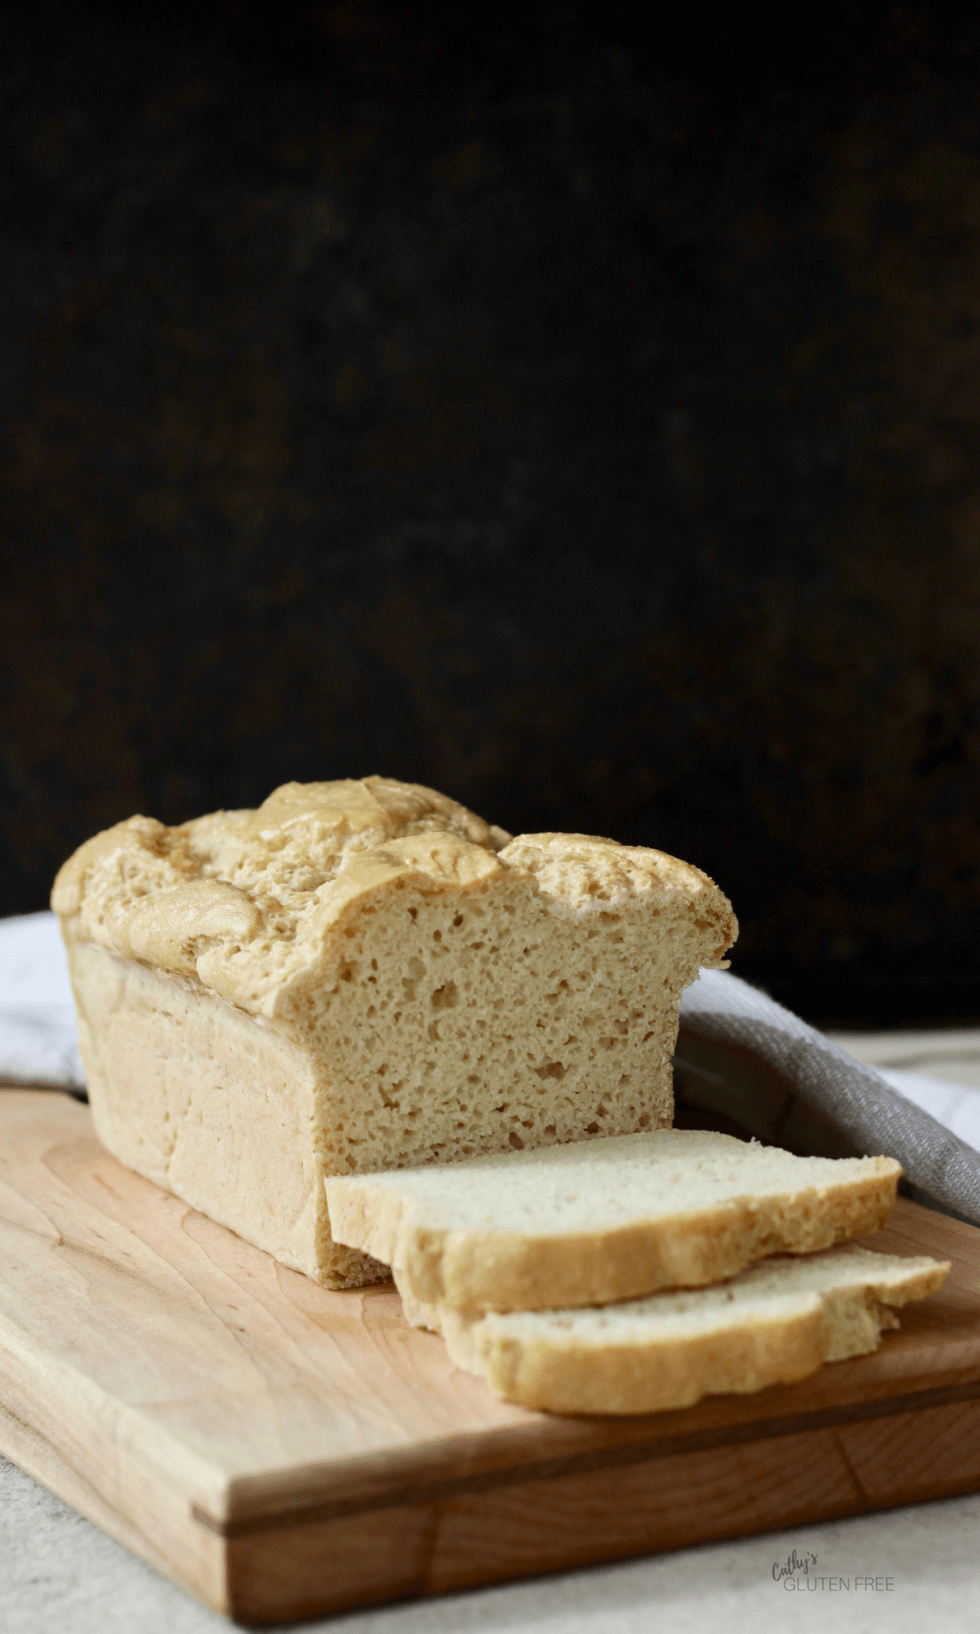 Gluten-Free Sandwich Bread recipe from Cathy's Gluten-Free